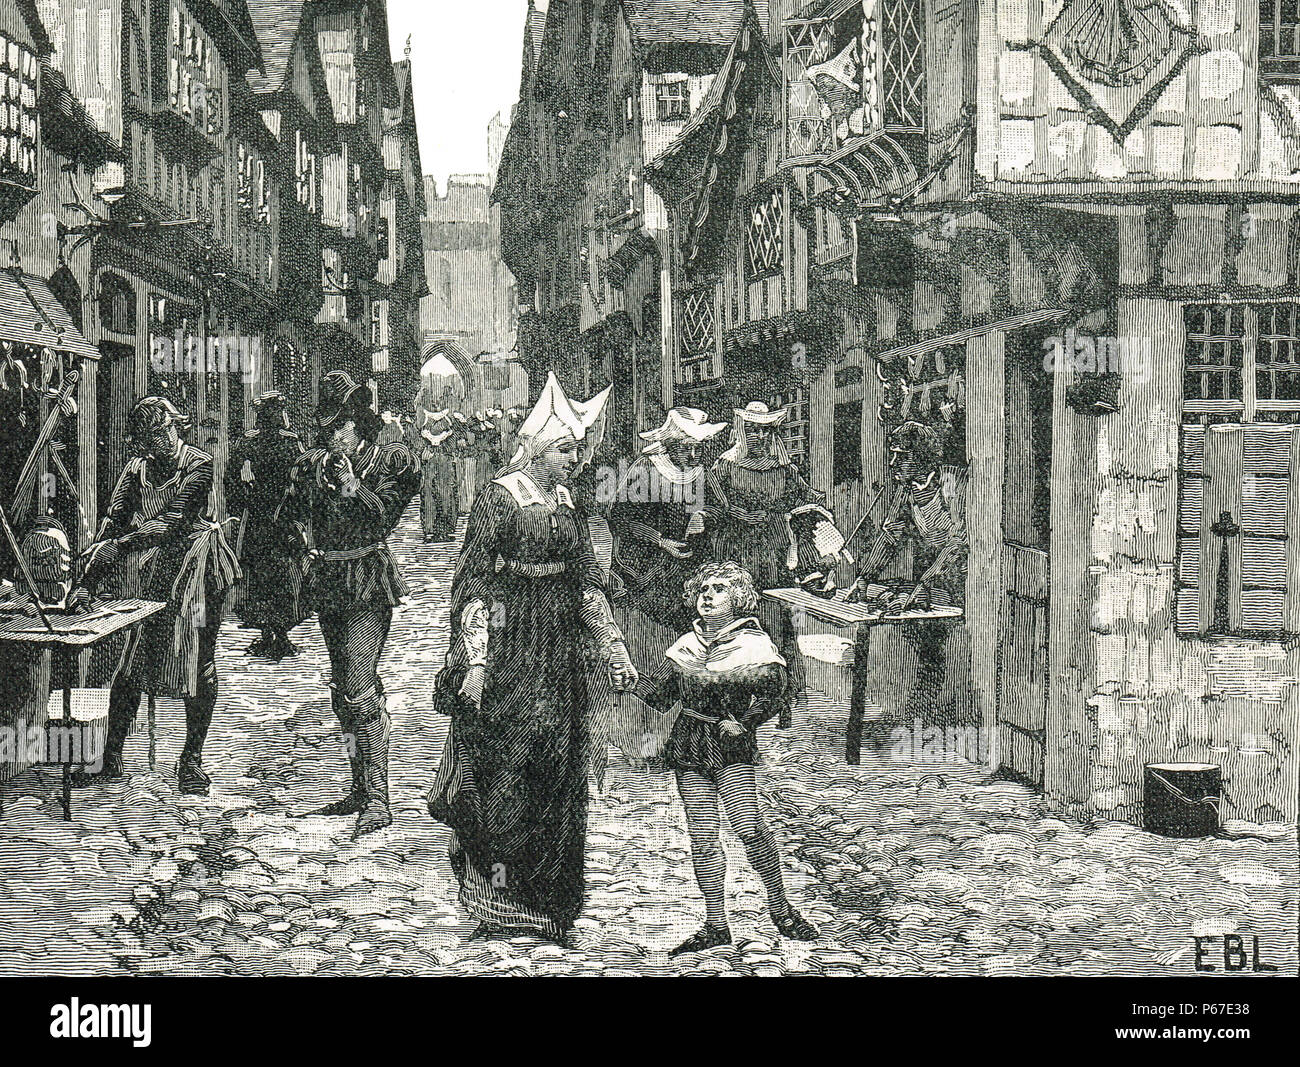 Street in London, England in the 15th Century - Stock Image